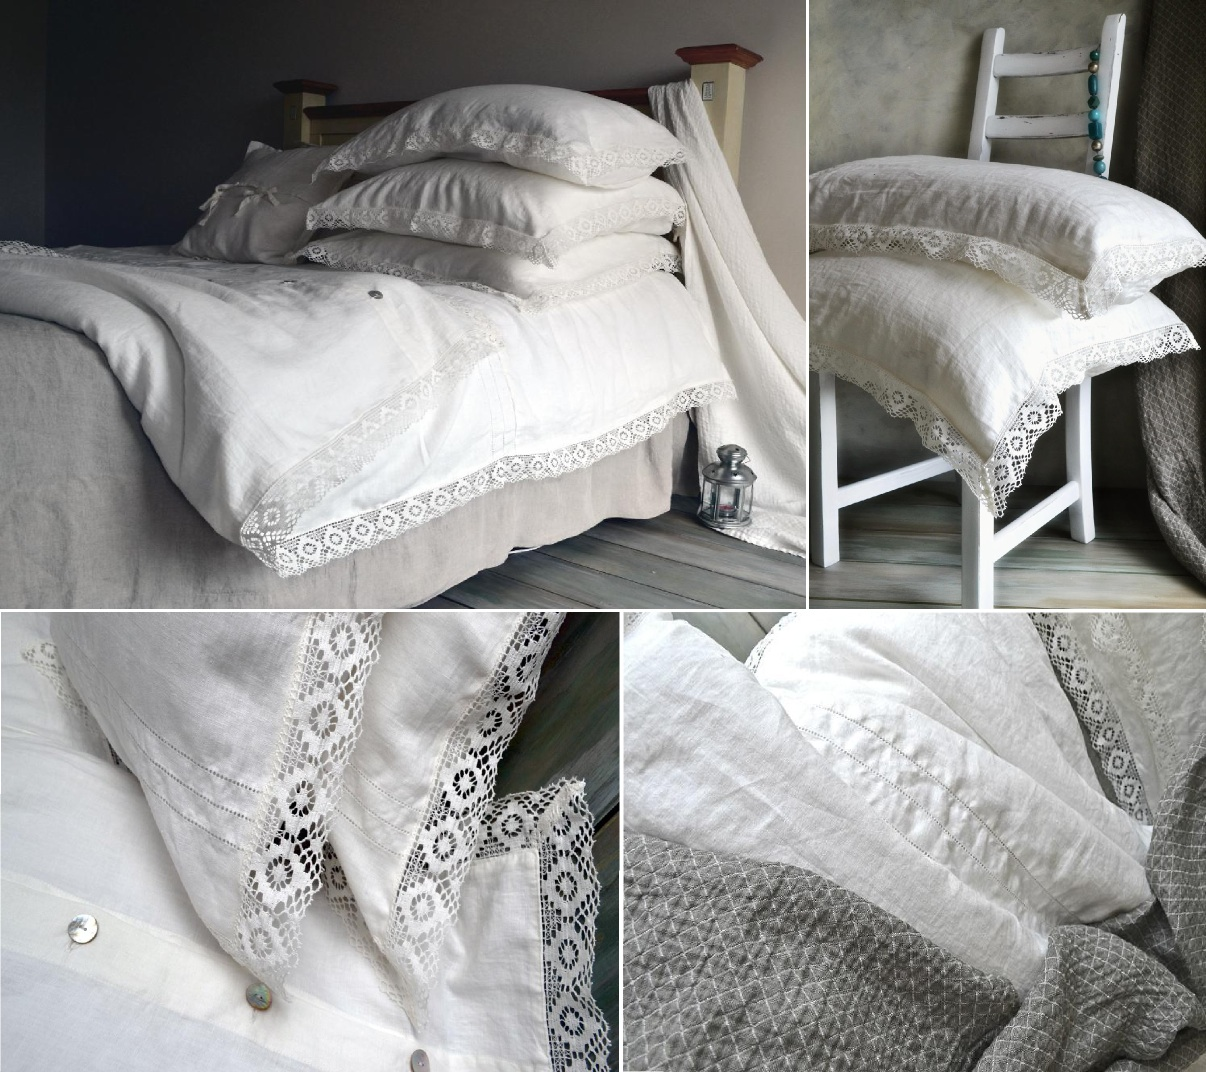 Provincial Living natural softened linen duvet cover with linen lace : washed linen quilt cover - Adamdwight.com